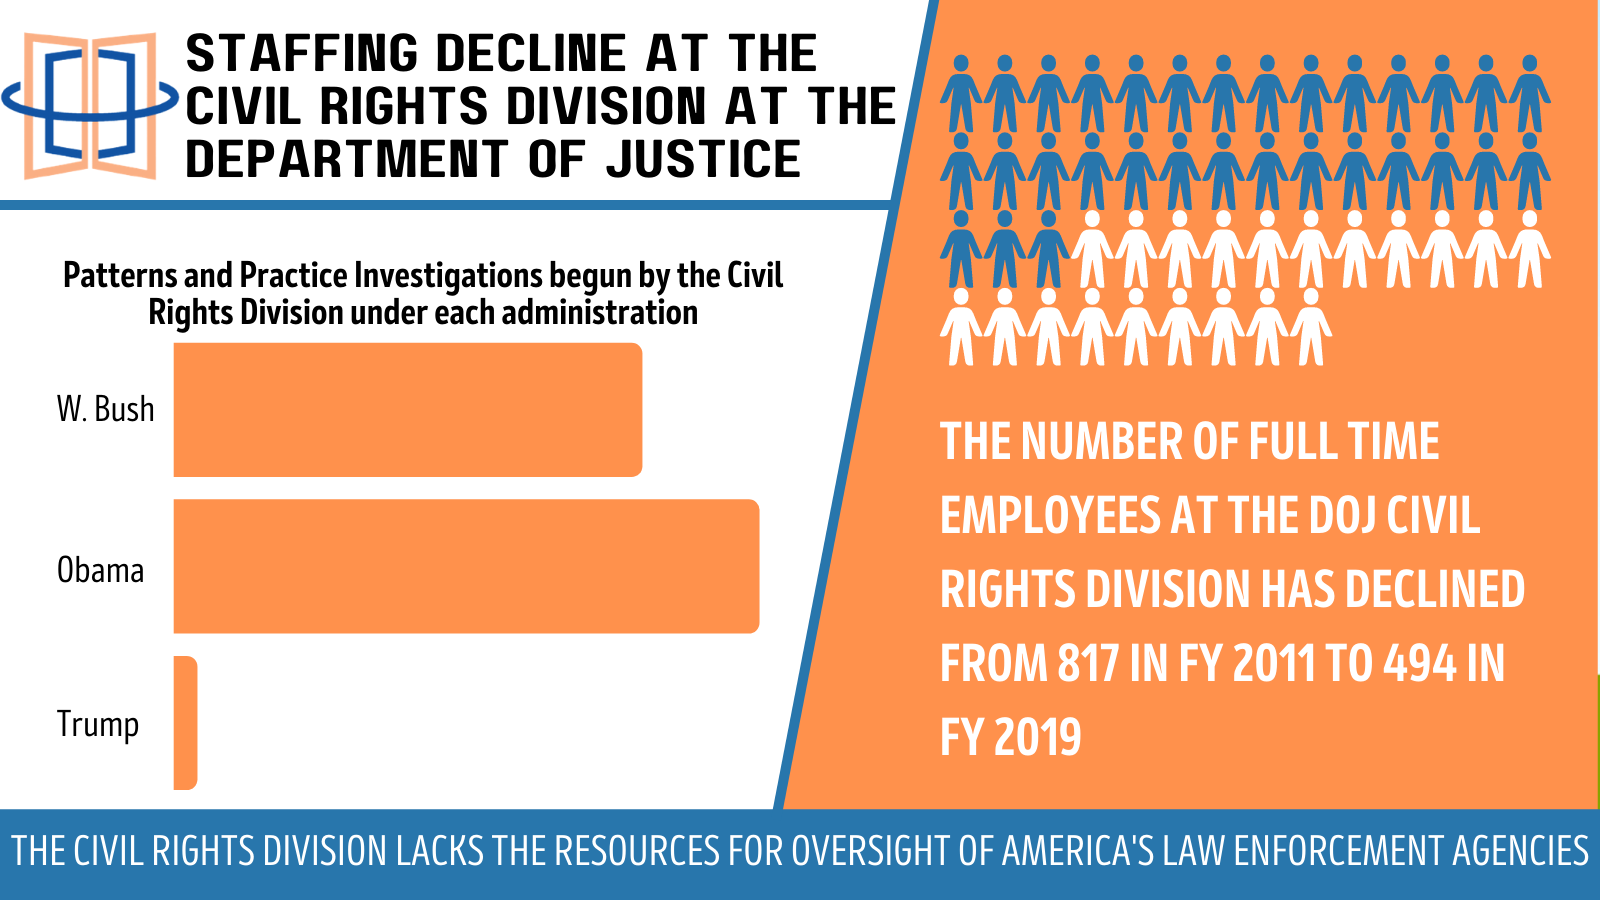 The DOJ's Civil Rights Division is Perilously Unstaffed, Slowing Biden Goals on Police Oversight and Reform